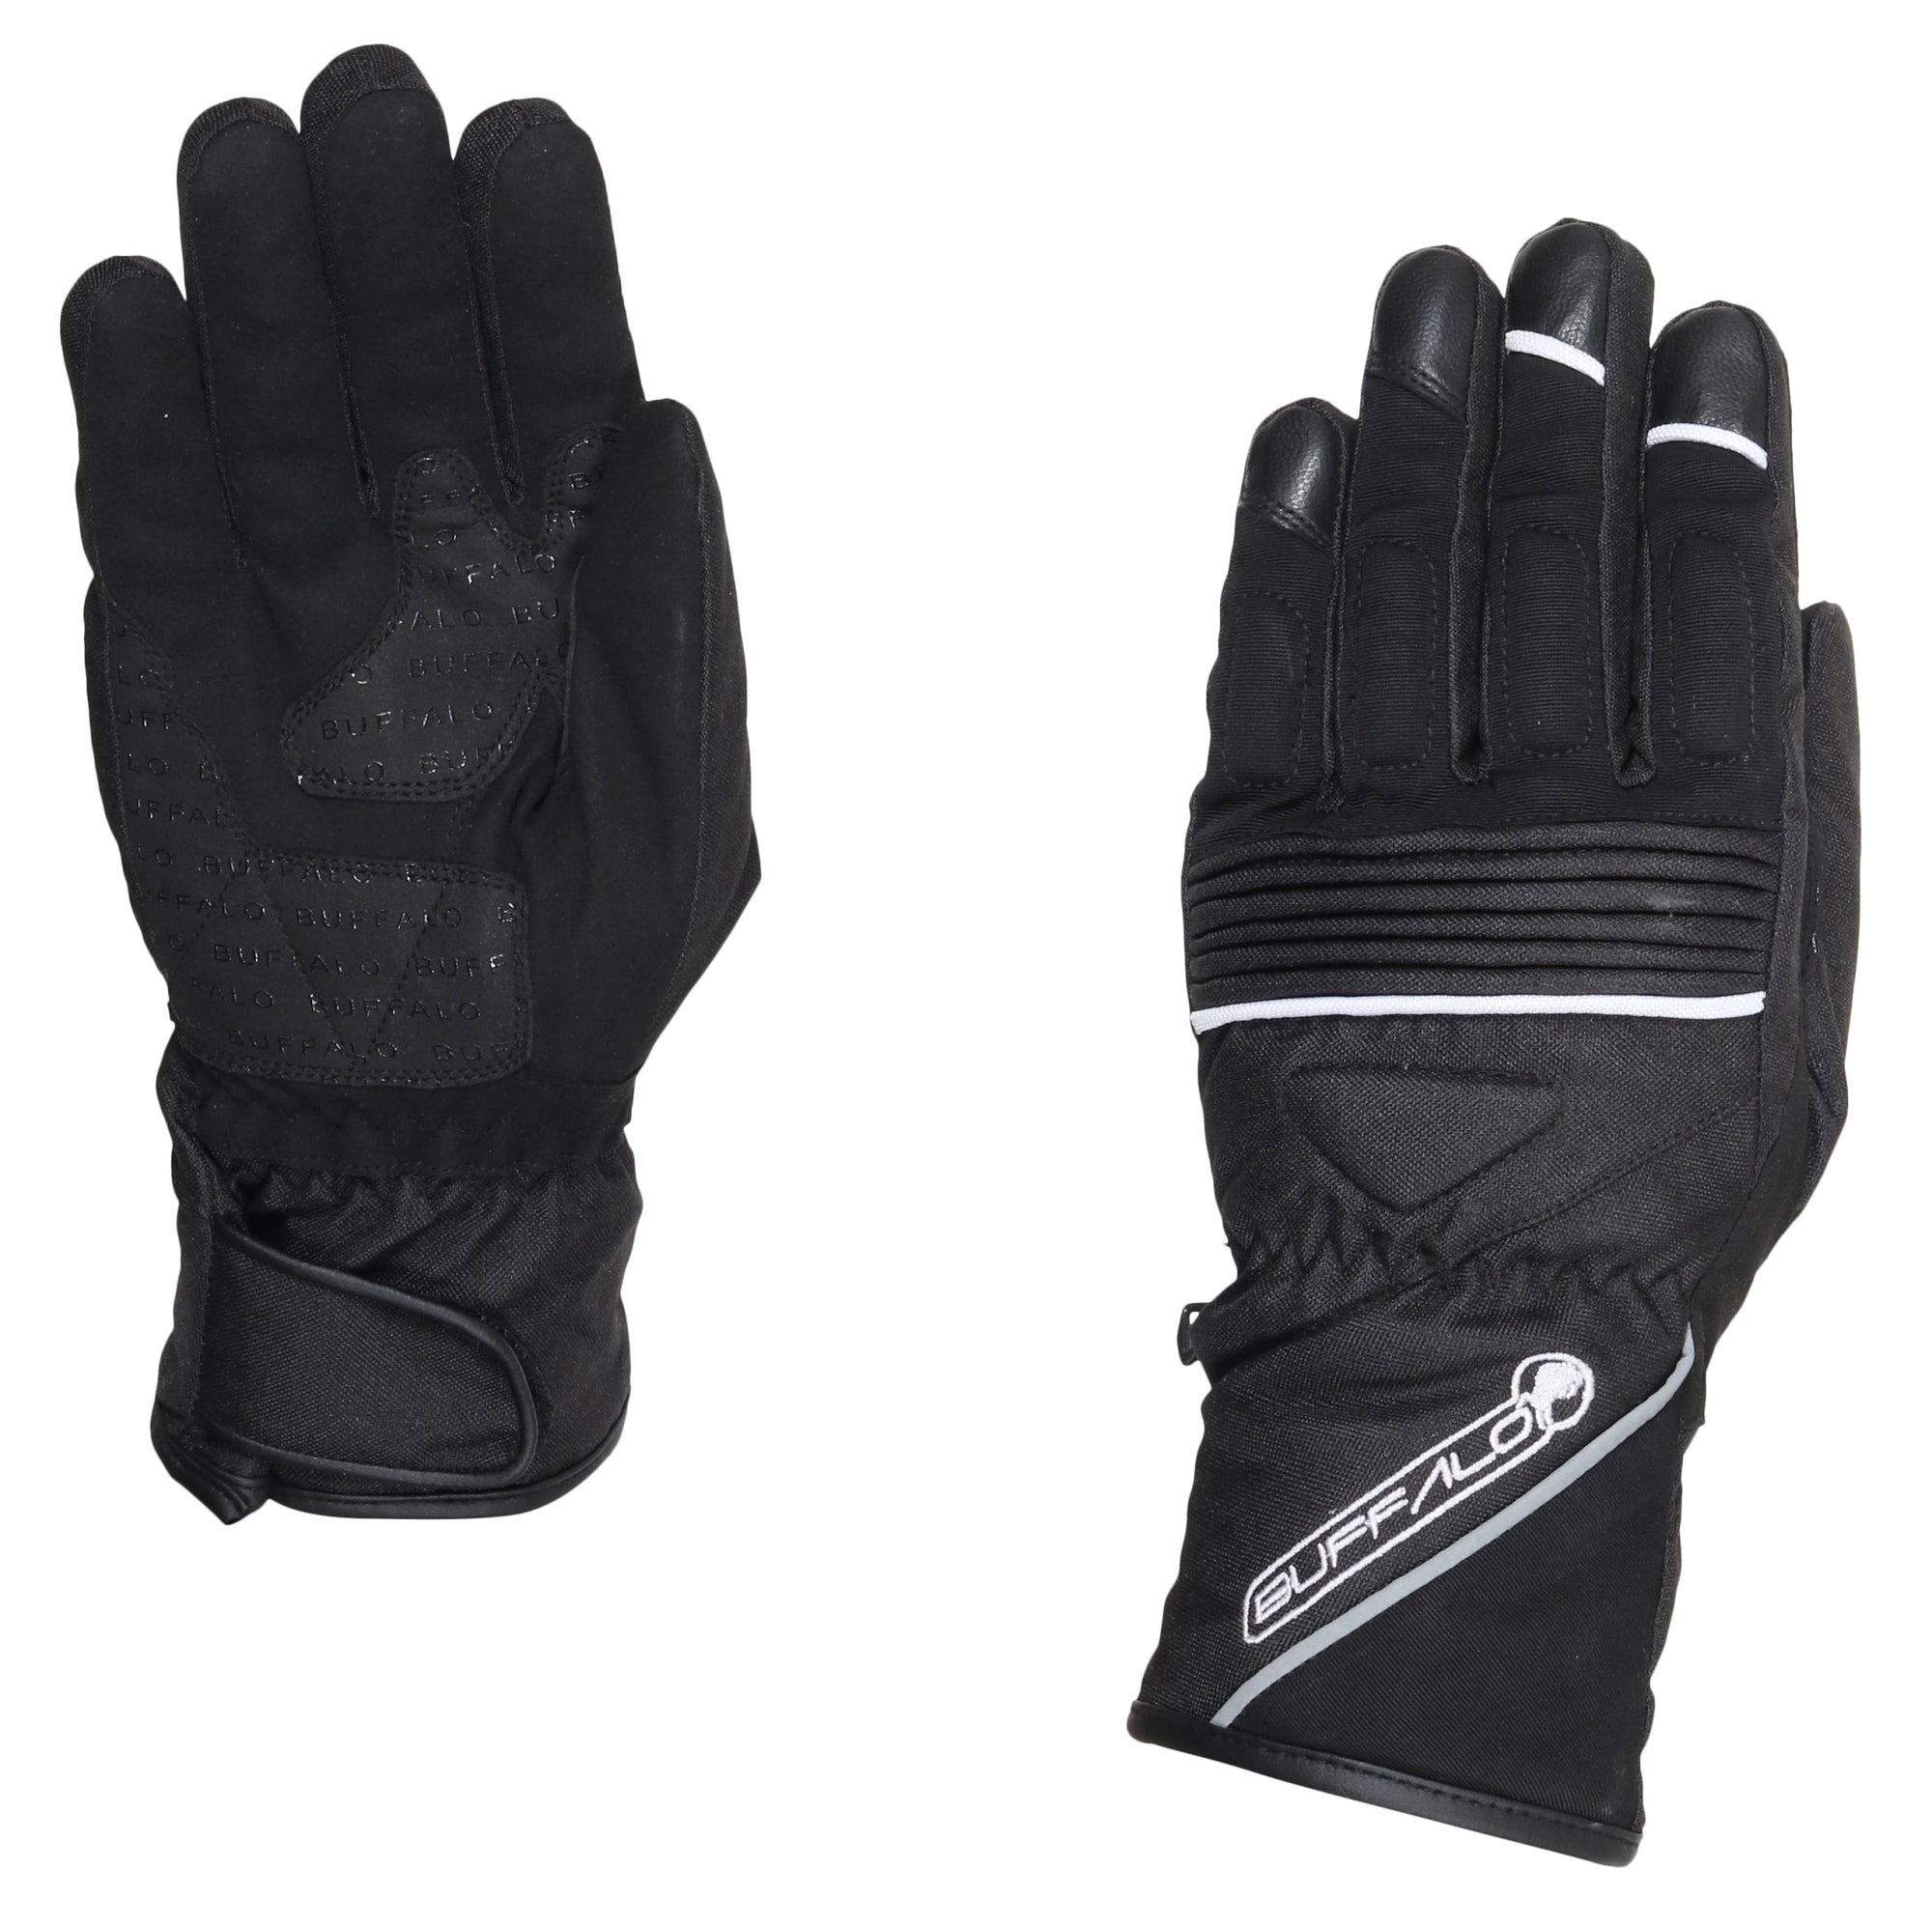 Buffalo Ladies Glove - Verona, Ladies Gloves, Buffalo - Averys Motorcycles